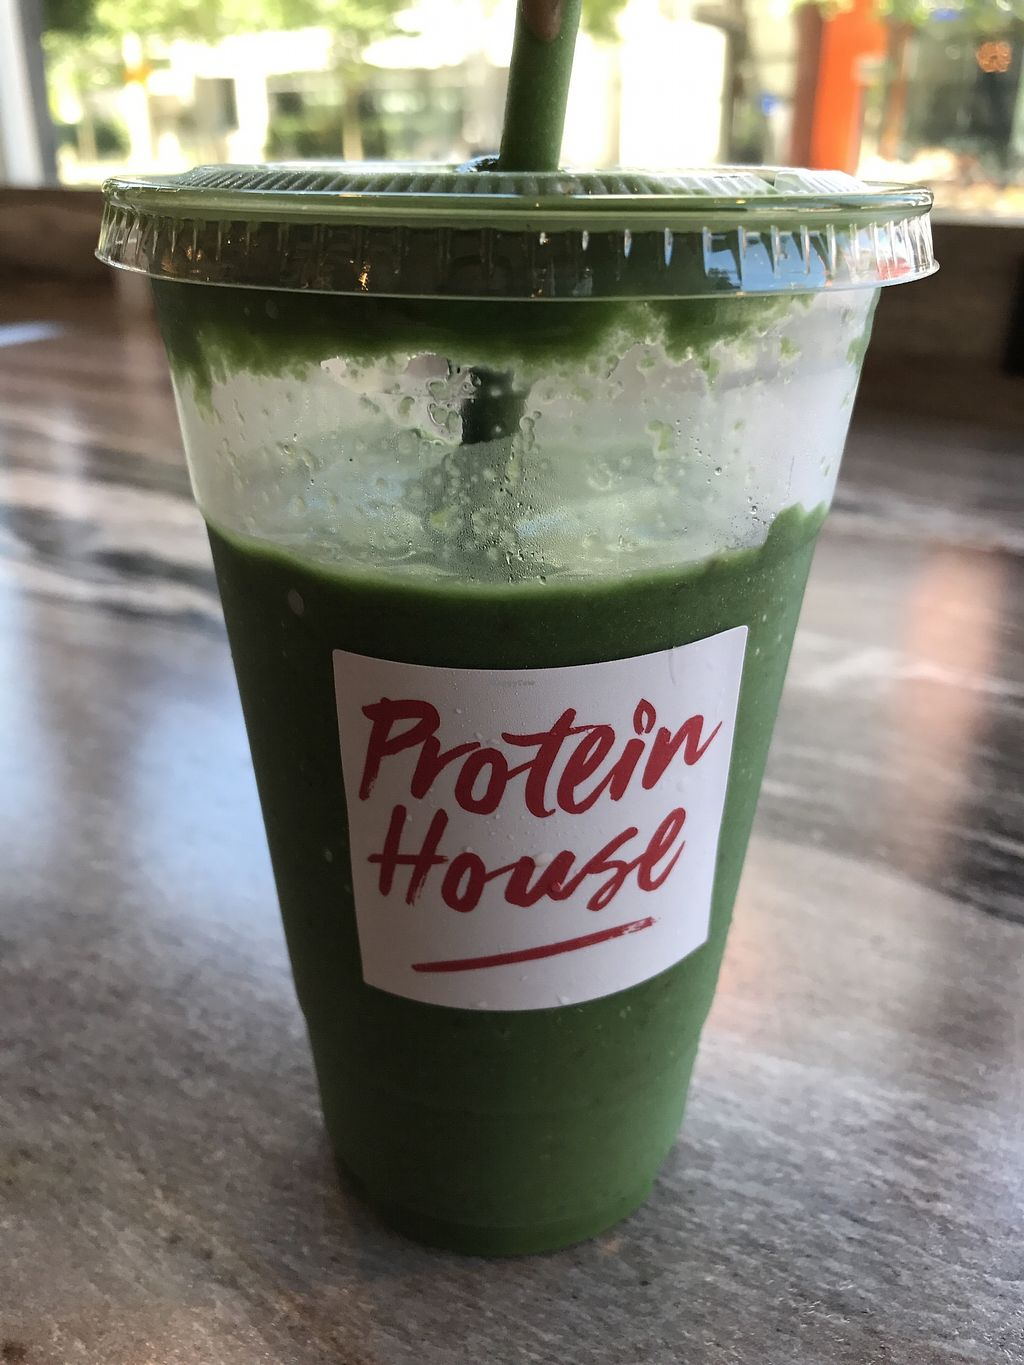 "Photo of Protein House  by <a href=""/members/profile/sjberrest"">sjberrest</a> <br/>Green Soul Smoothie <br/> June 25, 2017  - <a href='/contact/abuse/image/94718/273192'>Report</a>"